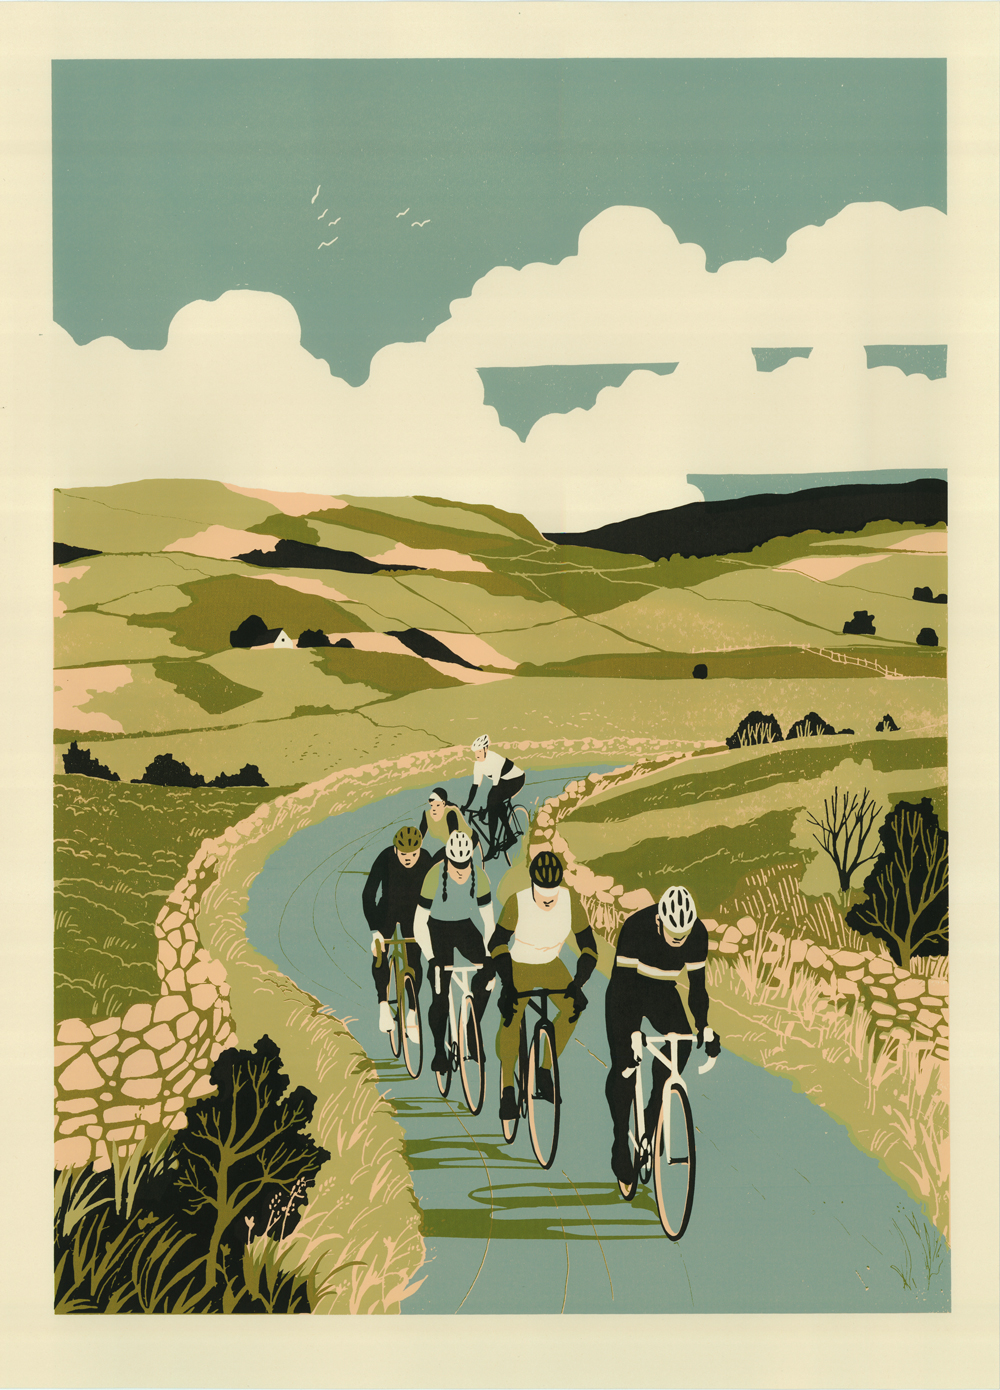 The Cycling Art of Eliza Southwood at Hornseys – The Gallery